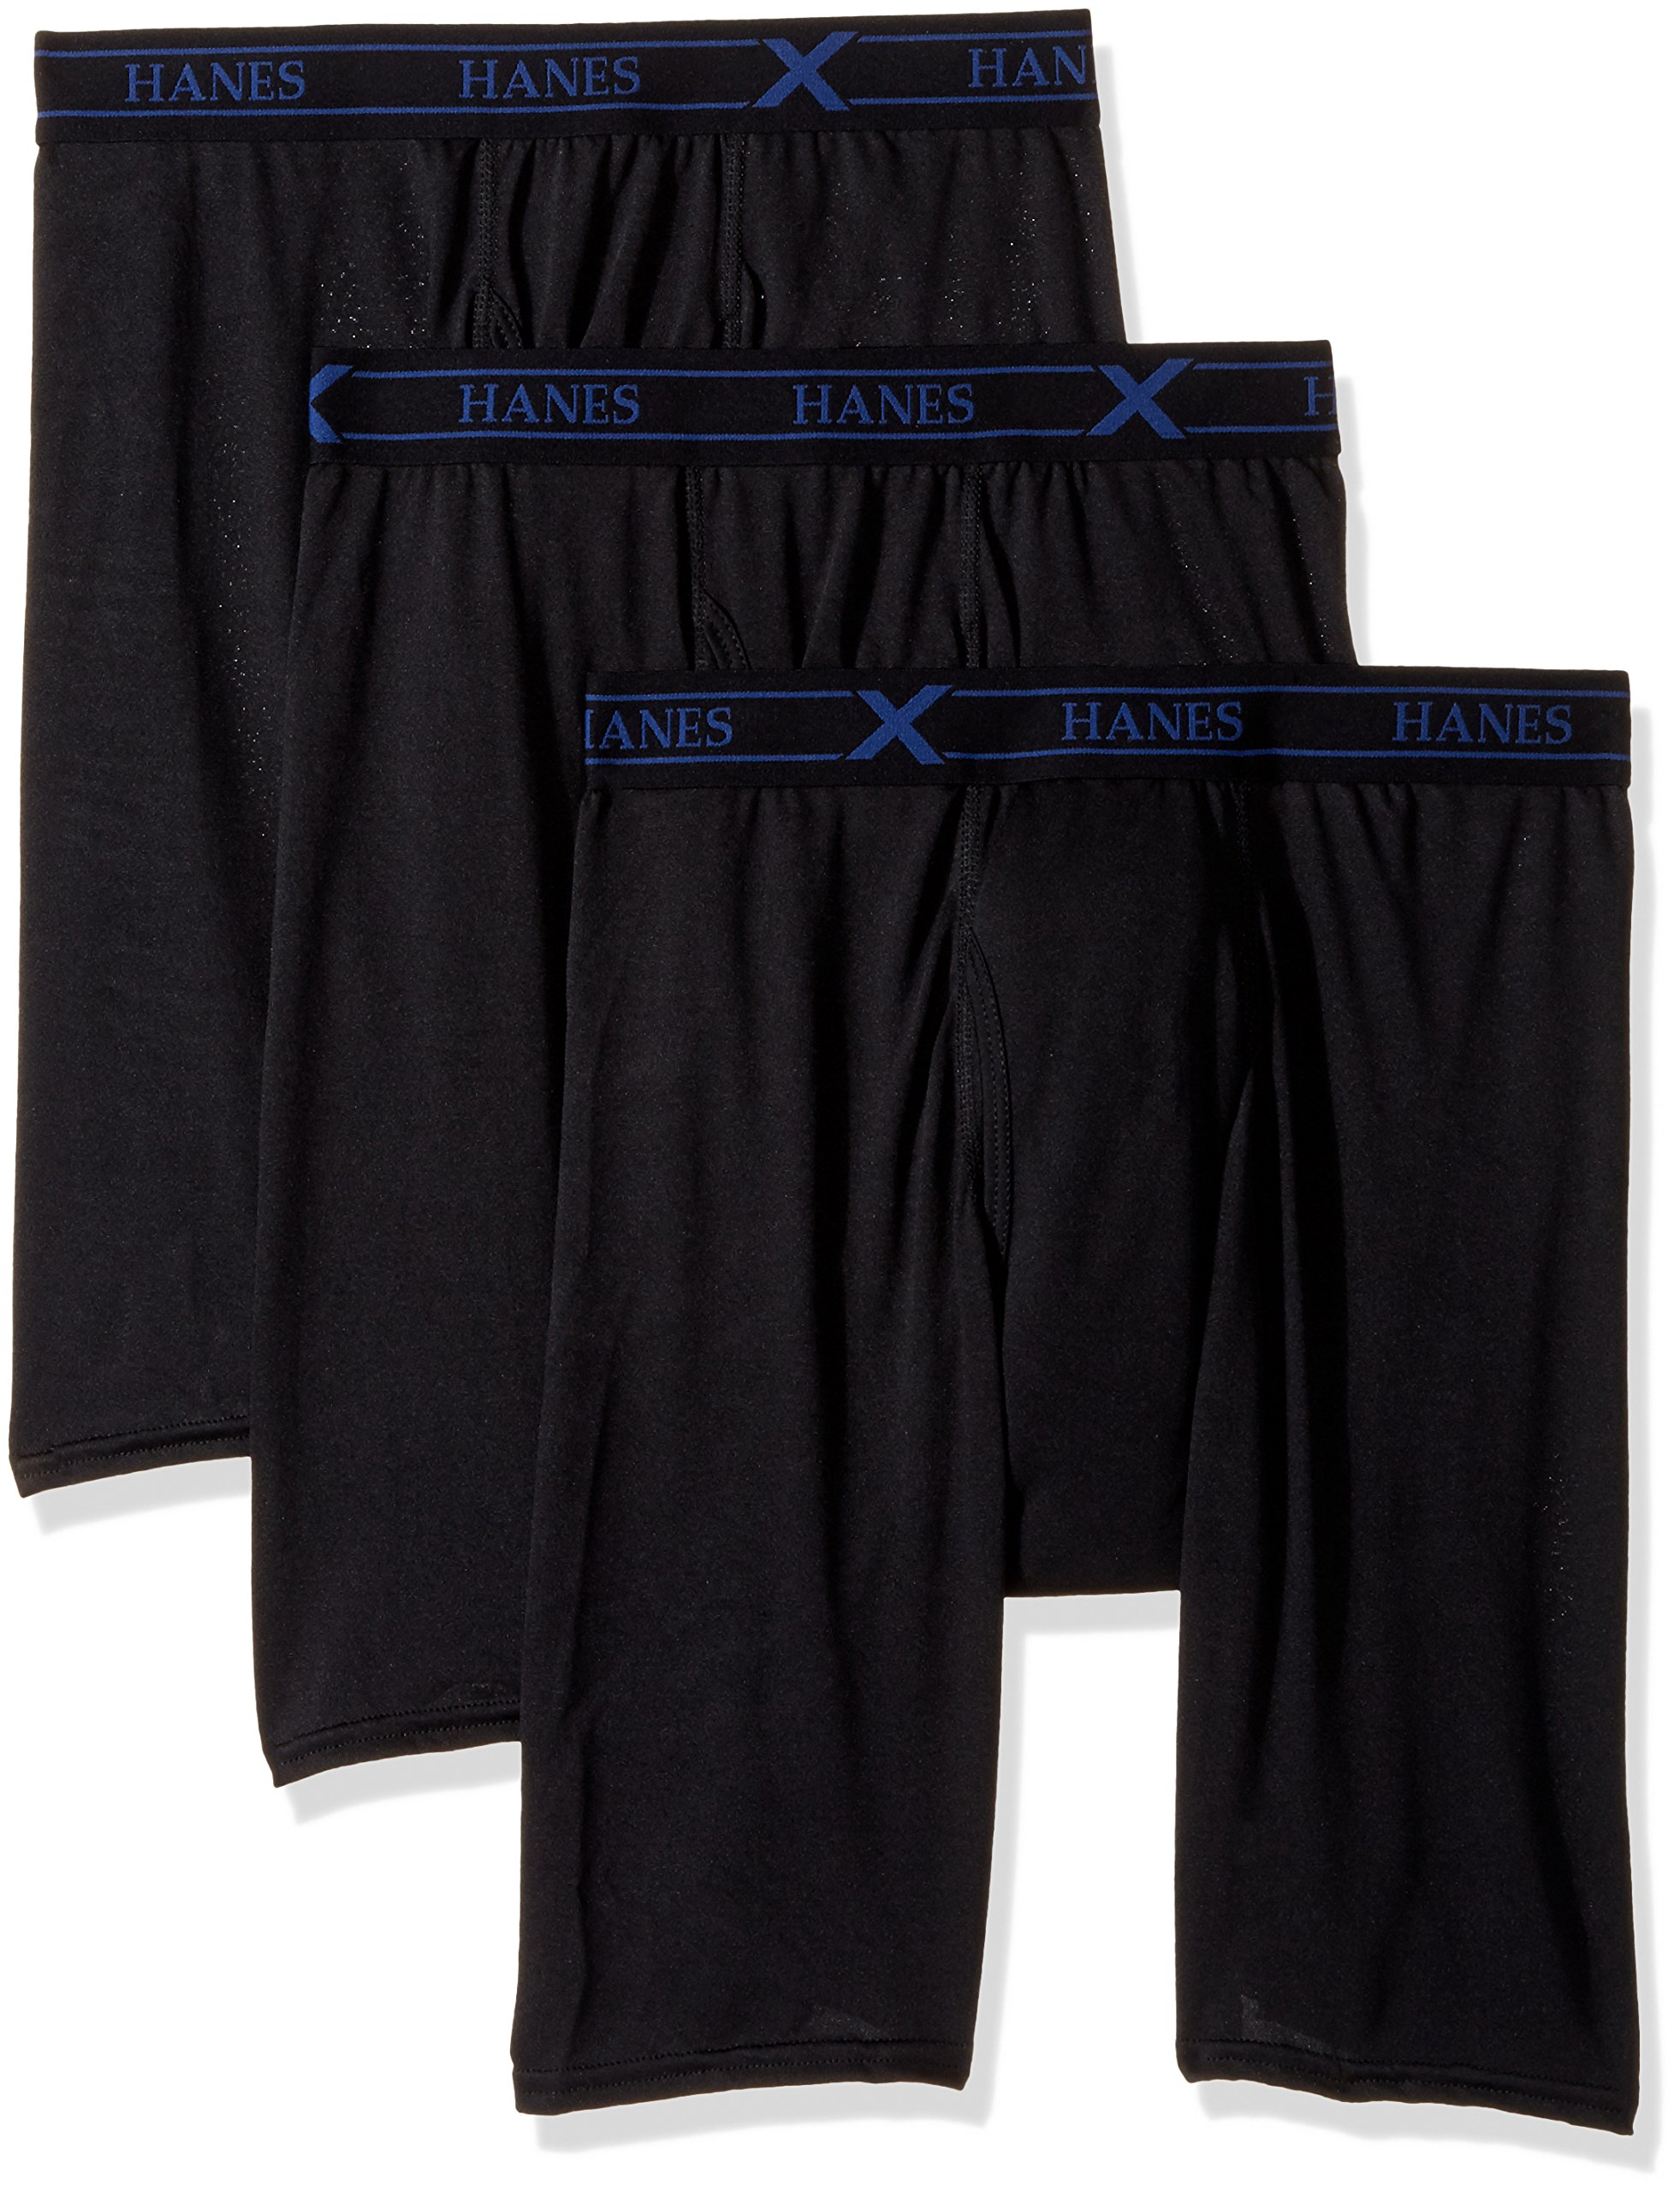 Hanes Ultimate Men's 3-Pack X-Temp Performance Long Leg Boxer Briefs, Color May Vary, Large